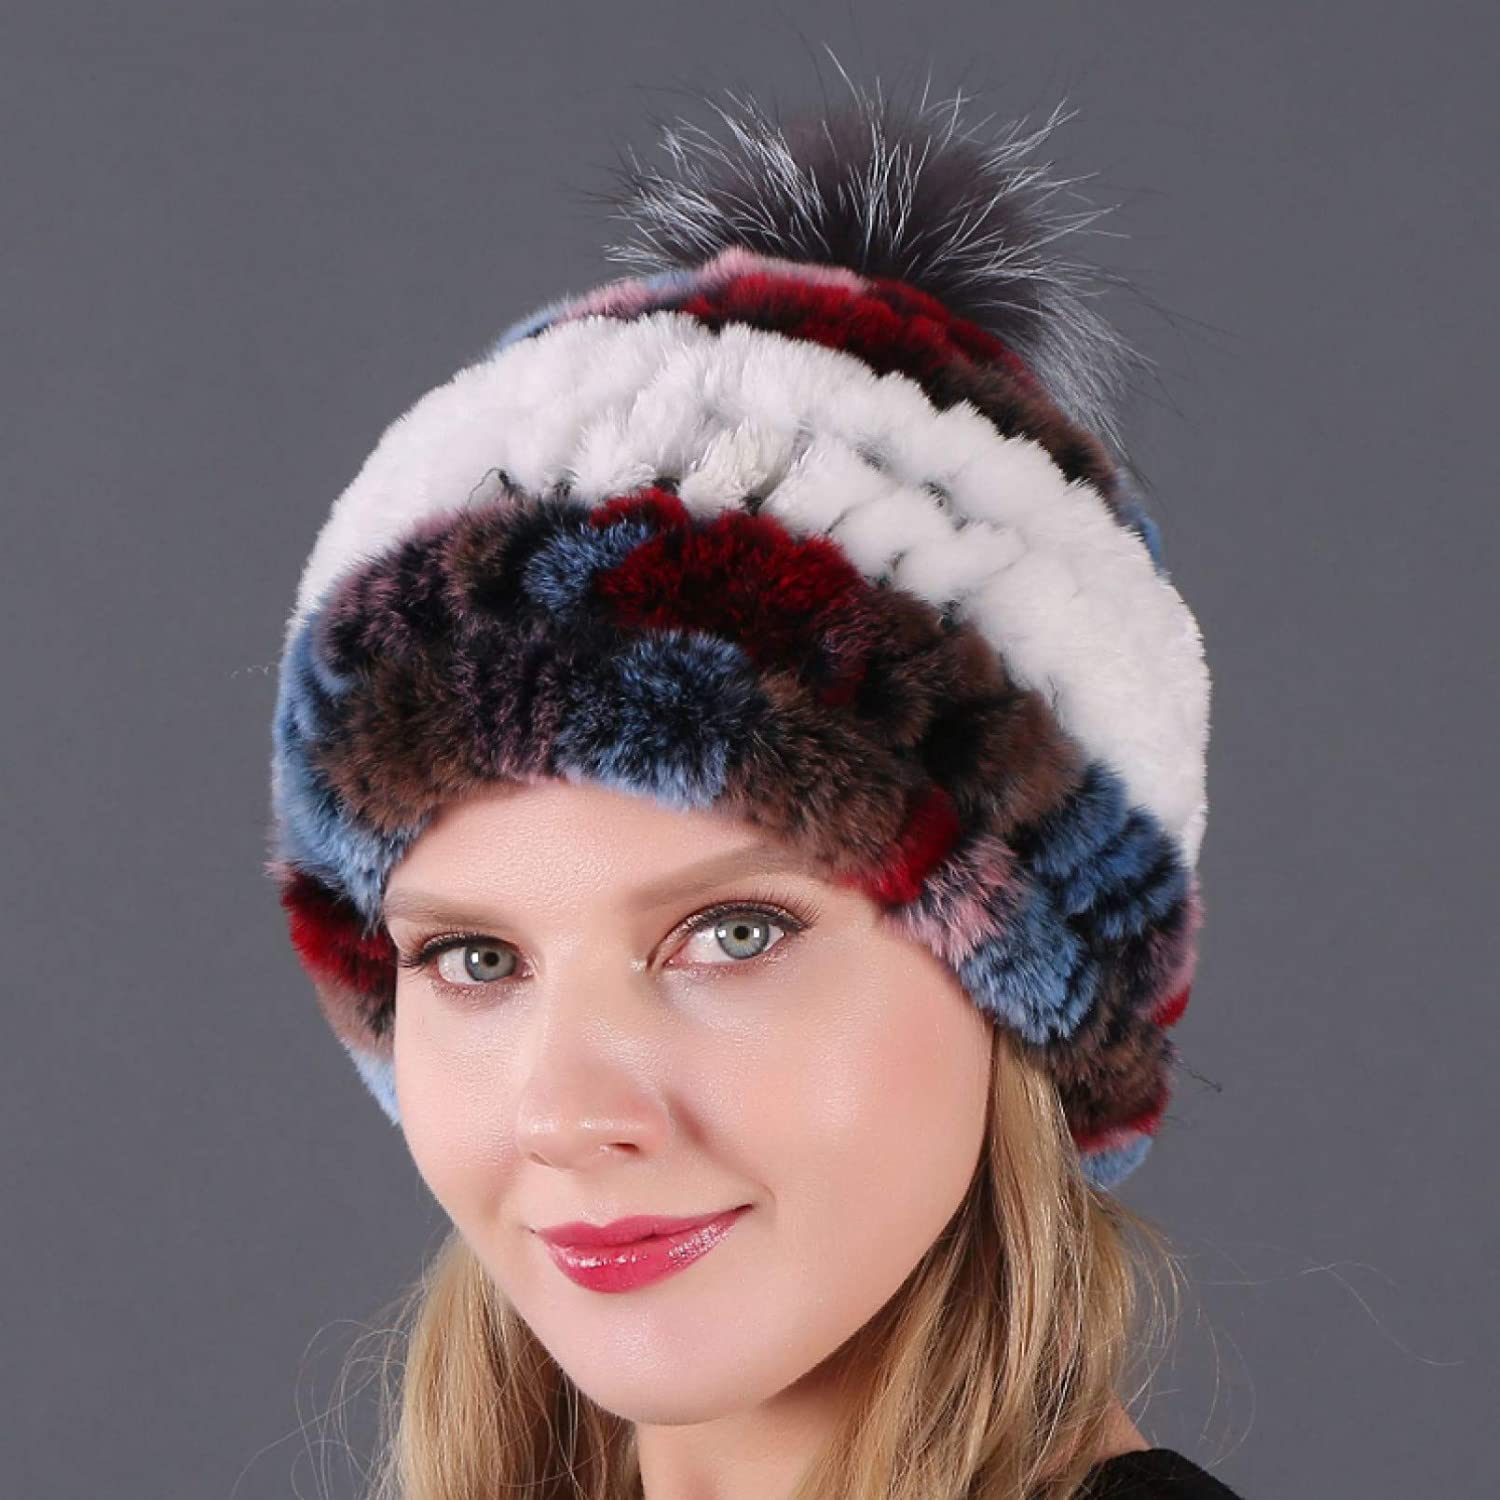 BELEMON Bomber Women Large special price Winter Hat Female Warm 4 years warranty Beanies Faux R Thick